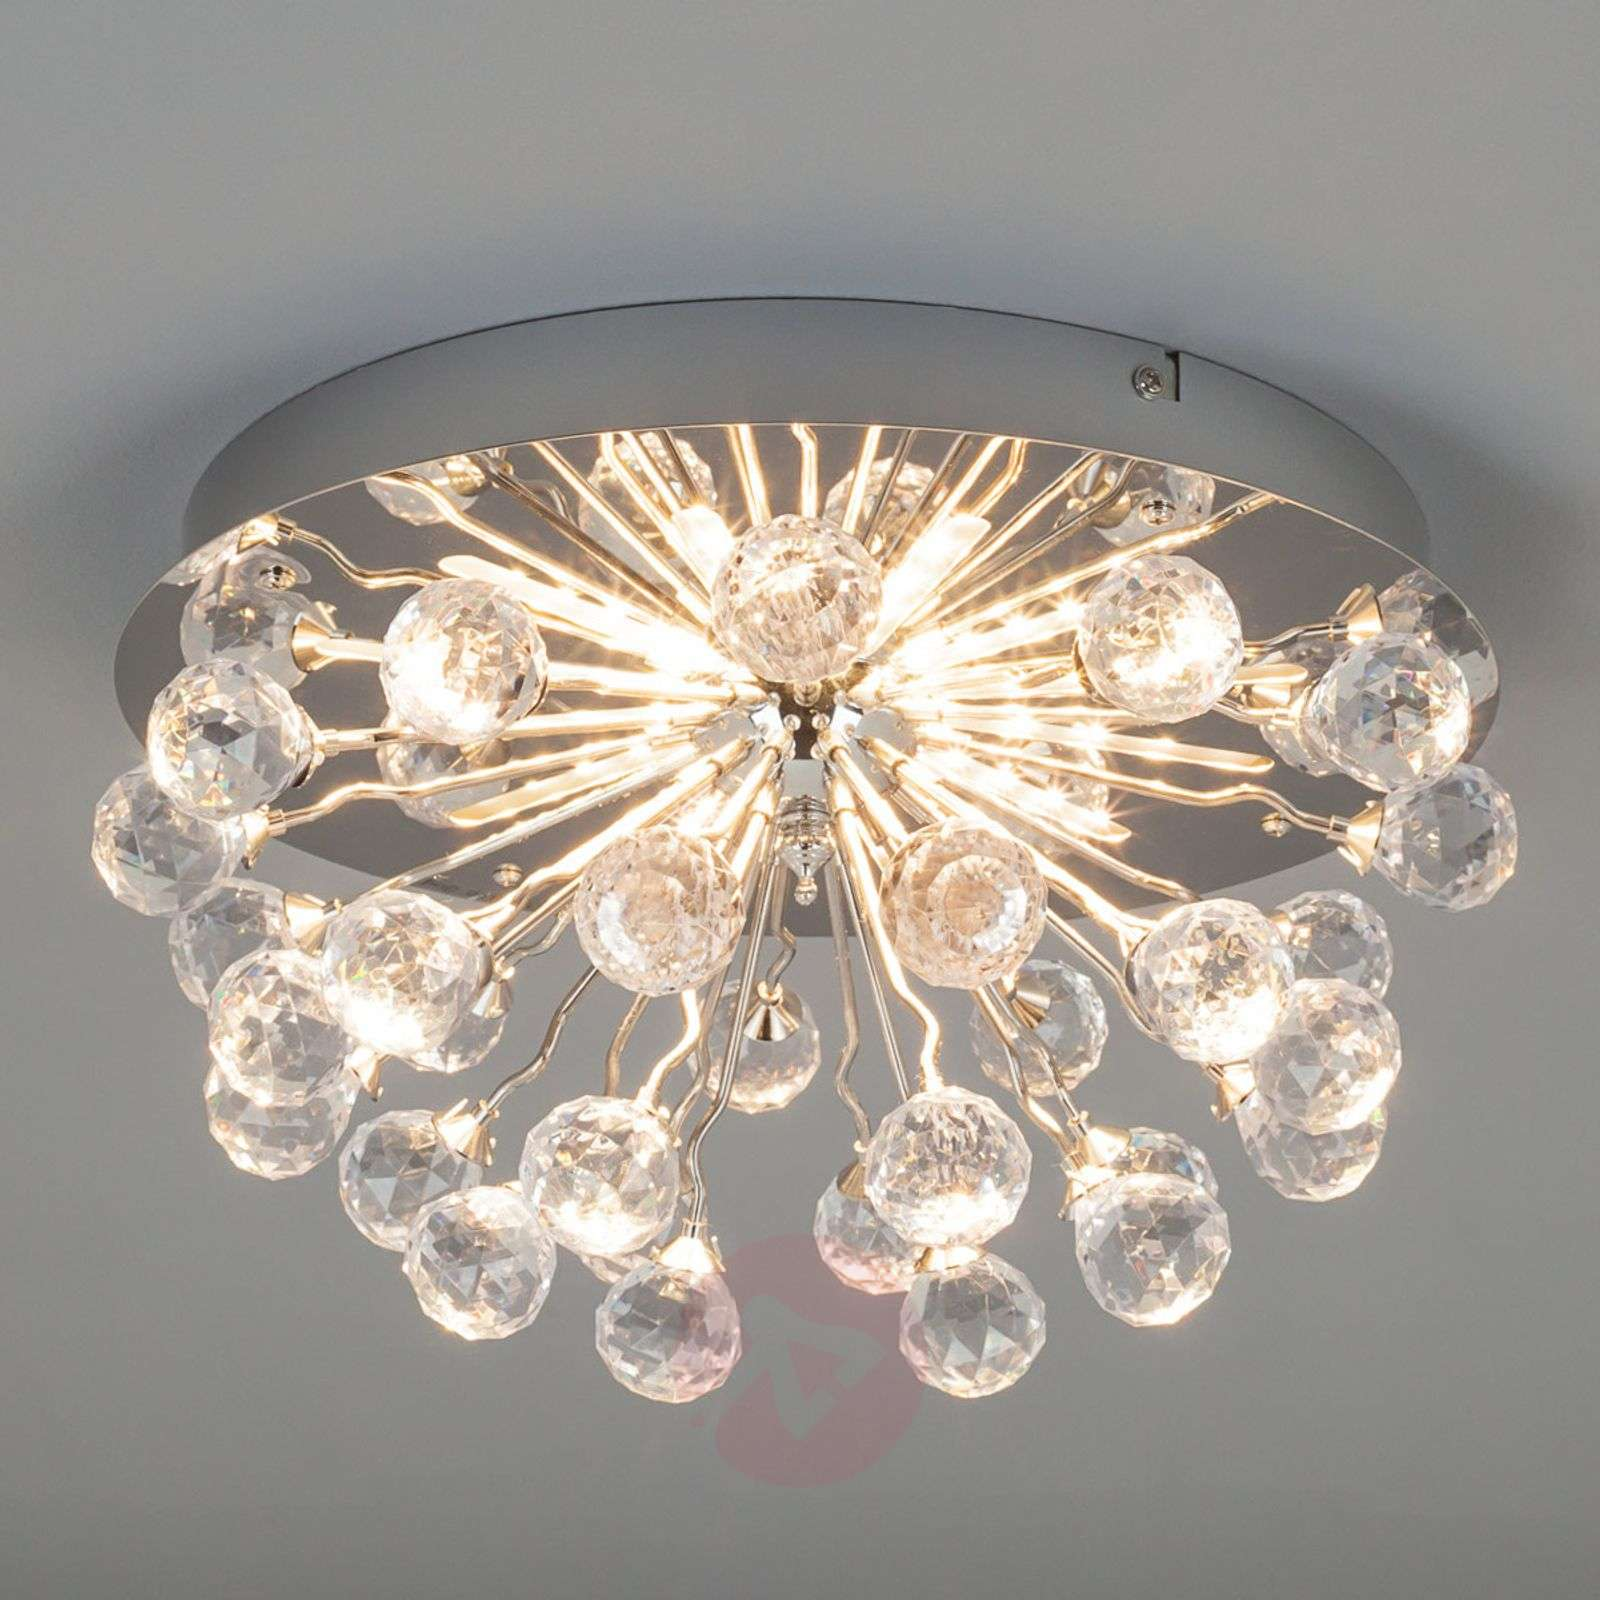 Bedroom ceiling lights buy online lights appealing led ceiling light theodora aloadofball Choice Image